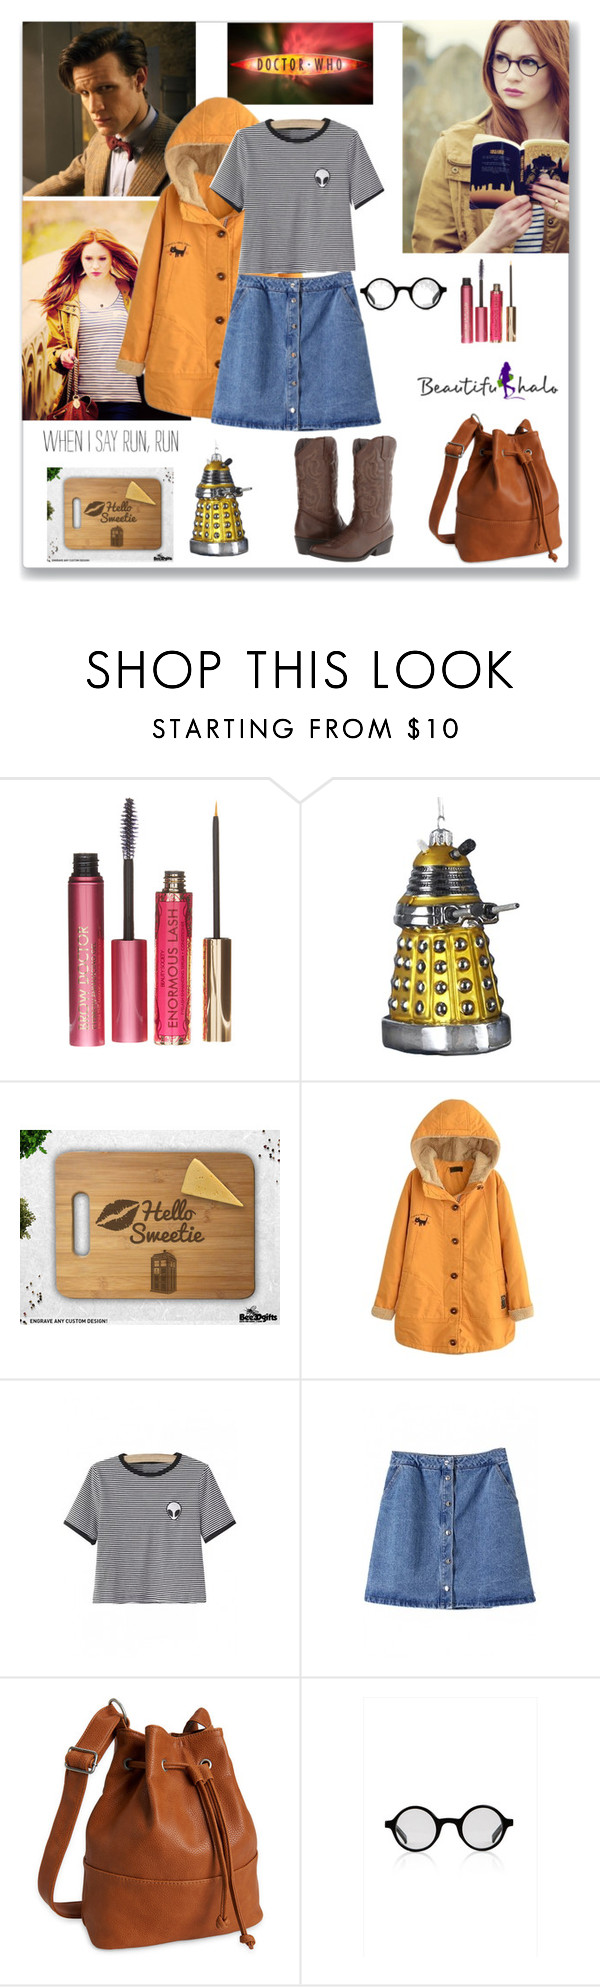 """""""Beautifulhalo 188"""" by ludmyla-stoyan ❤ liked on Polyvore featuring Kurt Adler, Aéropostale, Madden Girl, women's clothing, women's fashion, women, female, woman, misses and juniors"""